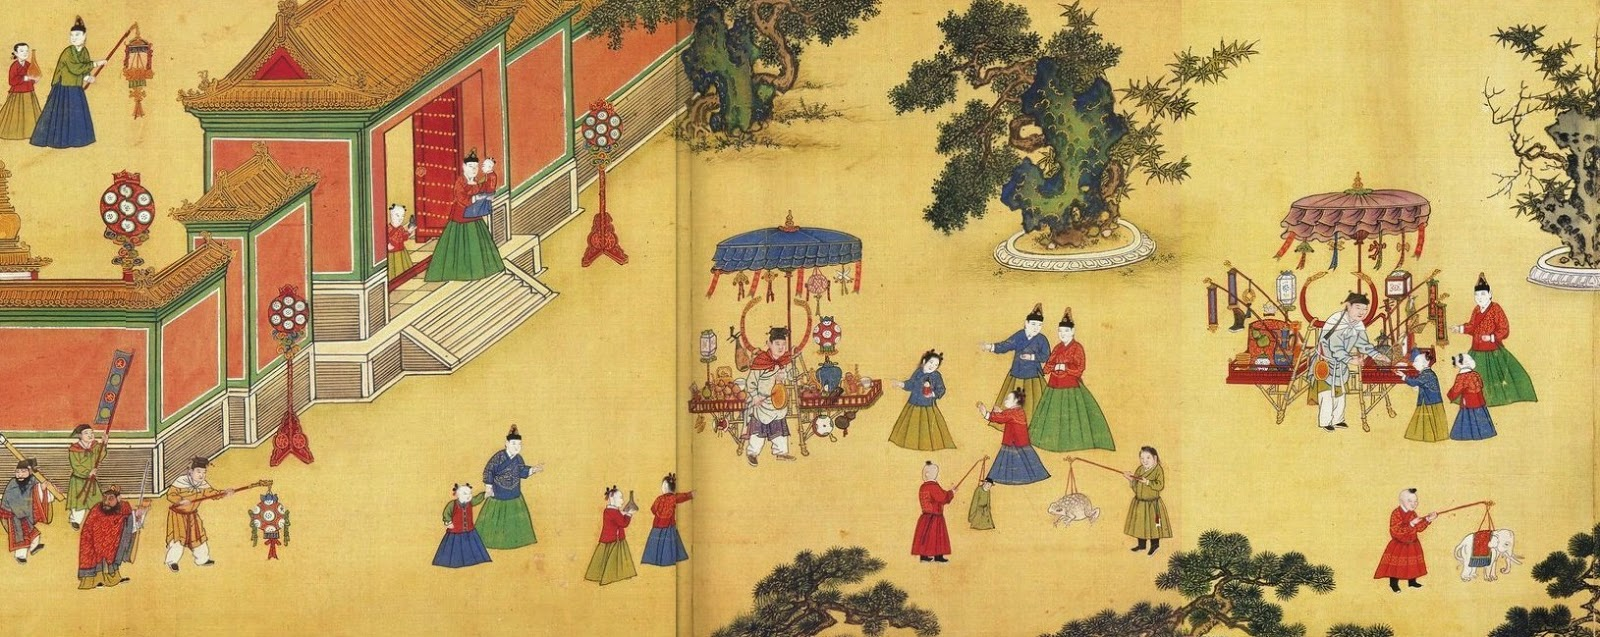 image: detail from Ming Dynasty painting, late 15th century, Wikimedia commons (   link   ).